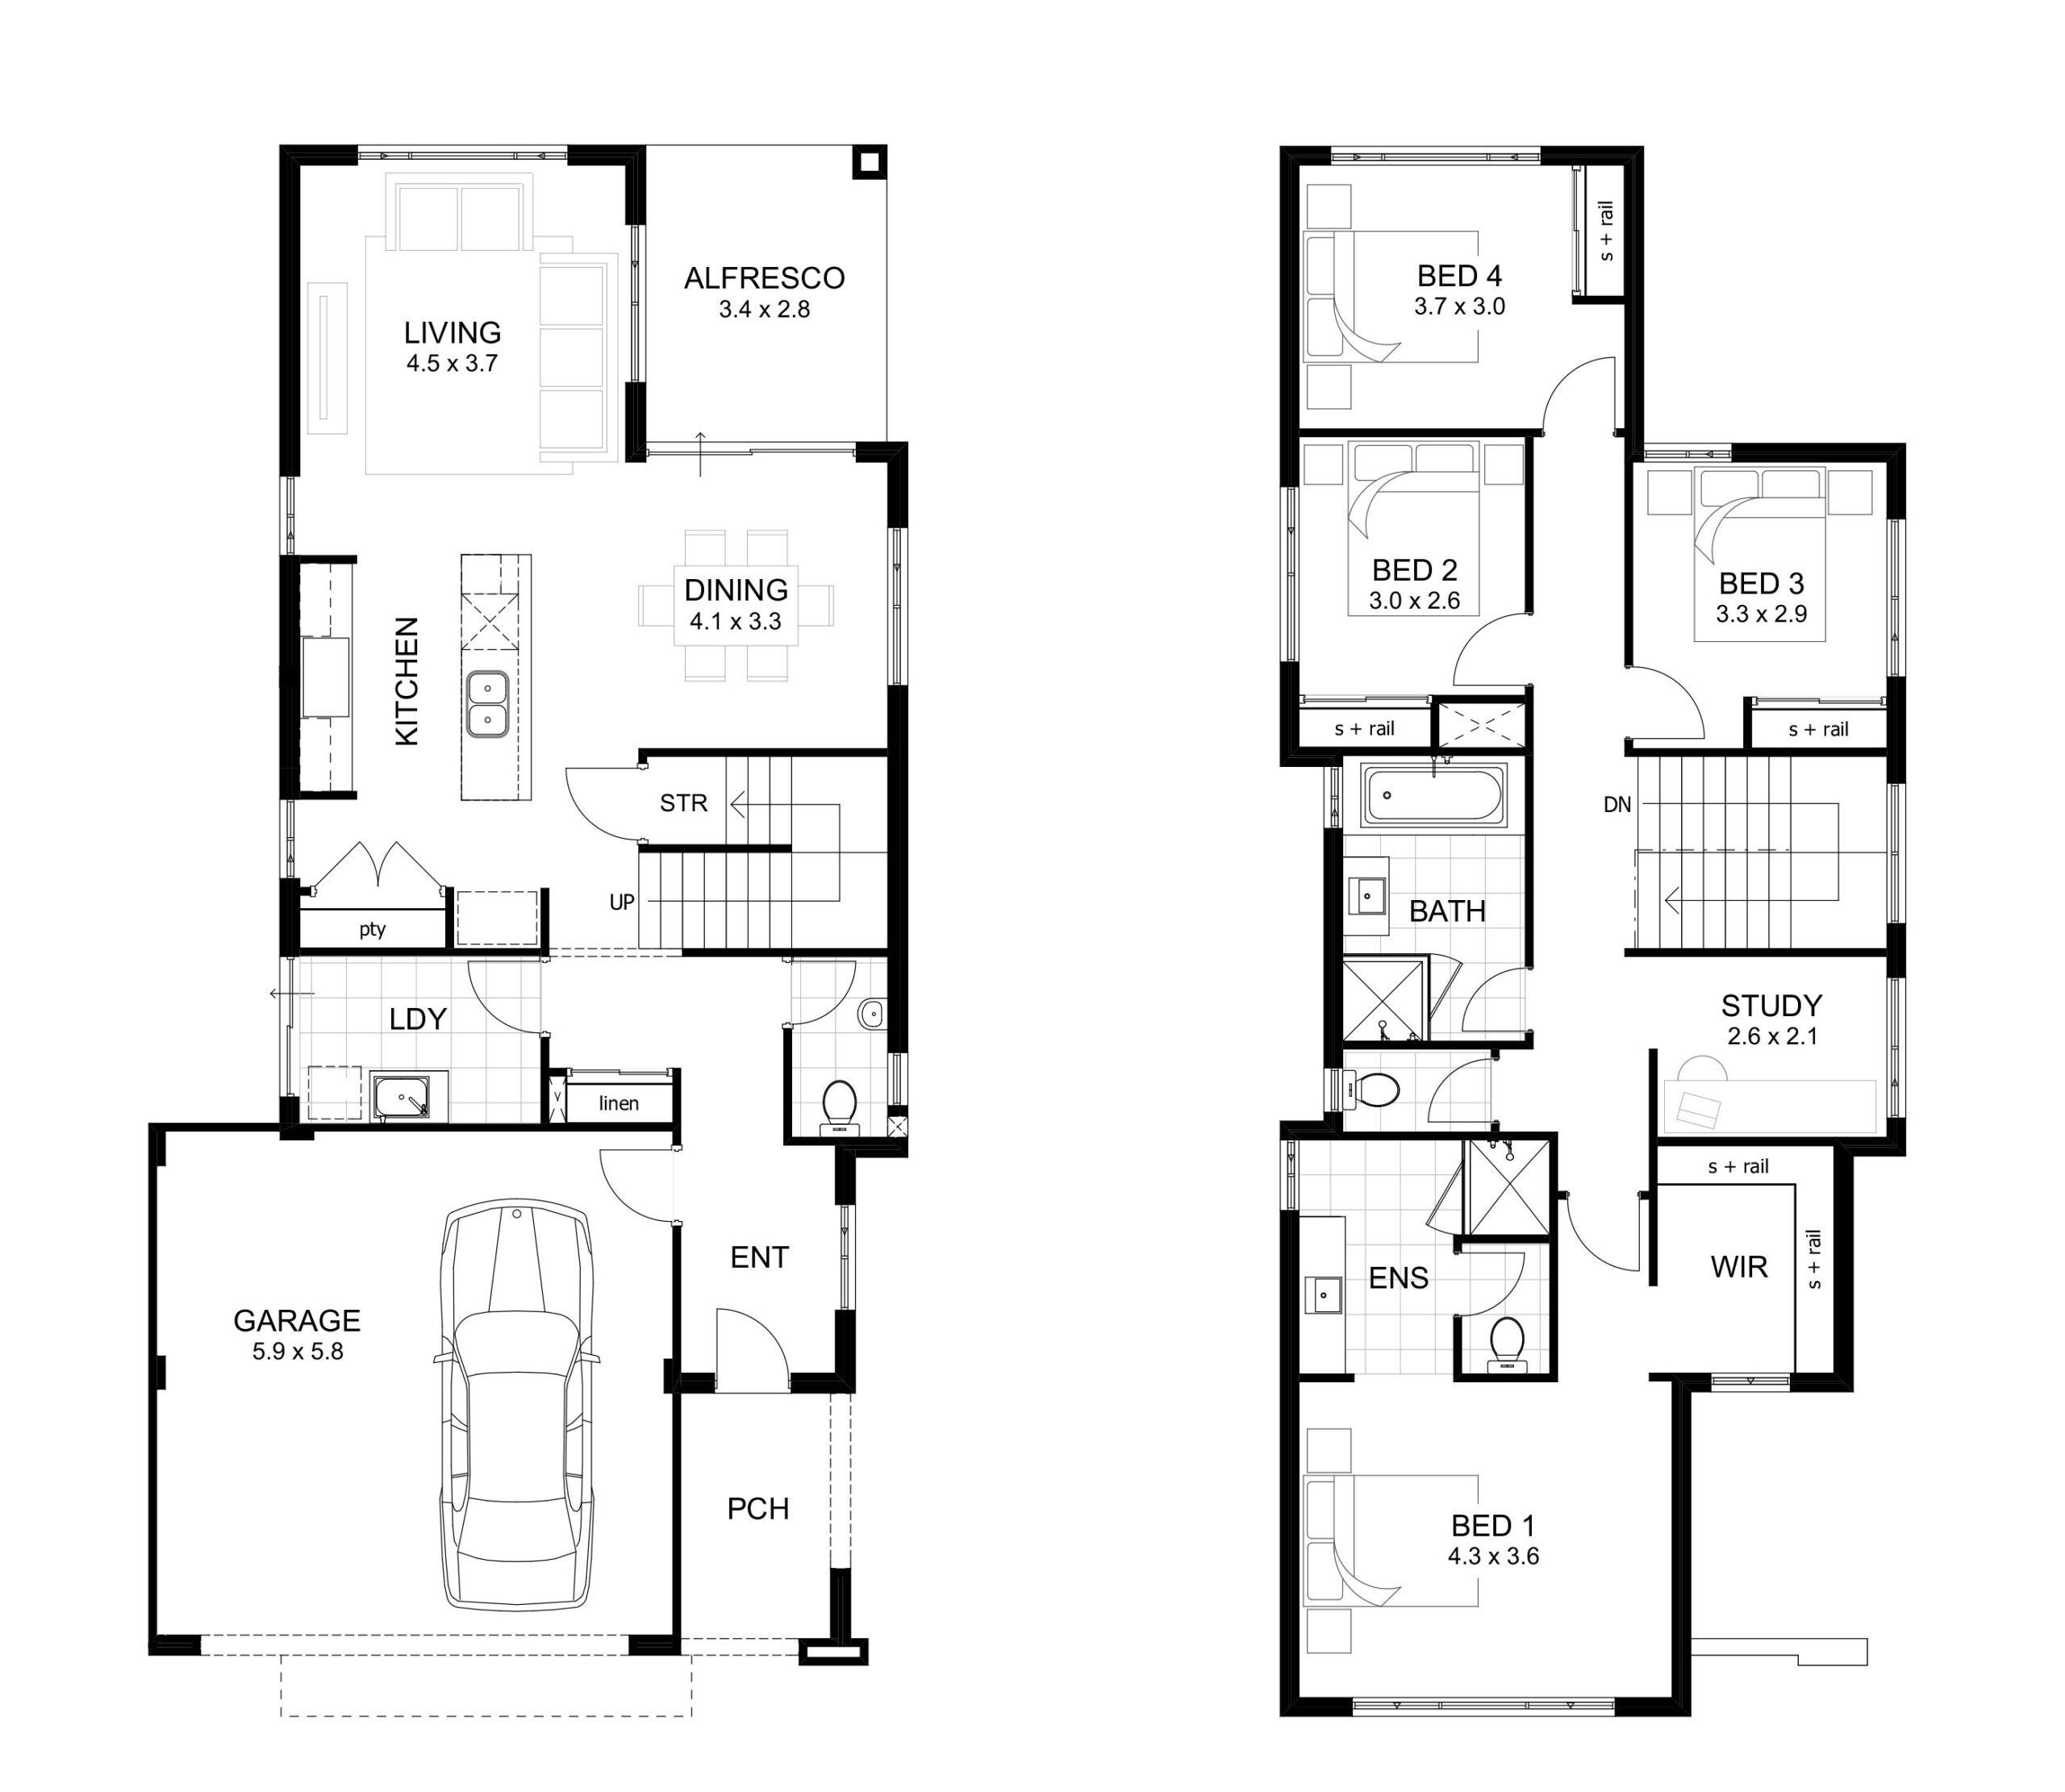 2 Schlafzimmer Zweistockiges Haus Plane Haus Plane Schlafzimmer Zweistockiges In 2020 Double Storey House Plans Double Story House 4 Bedroom House Plans